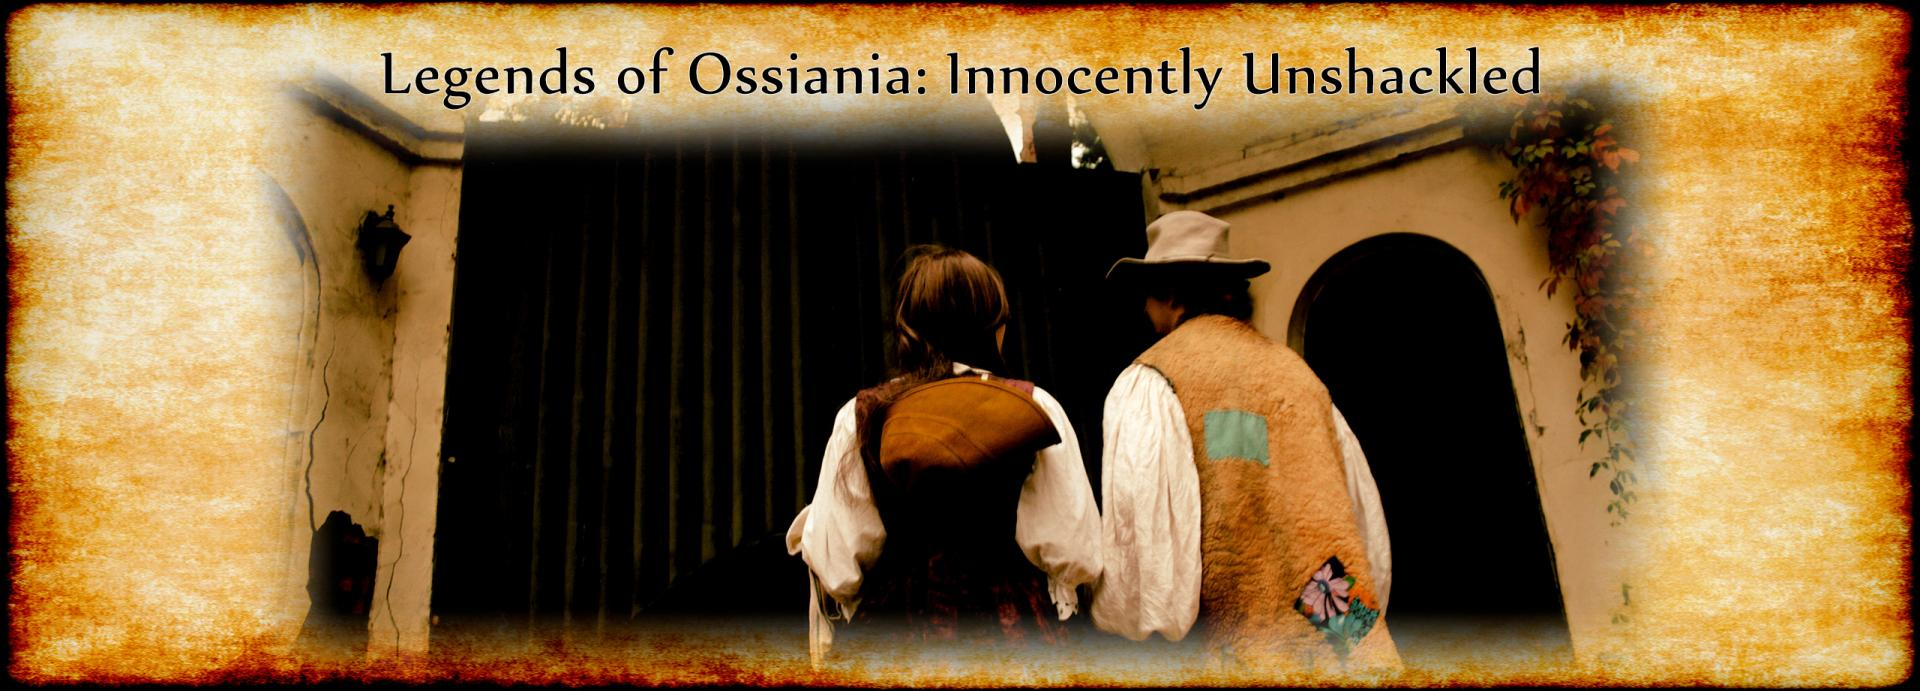 Legends of Ossiania: Innocently Unshackled